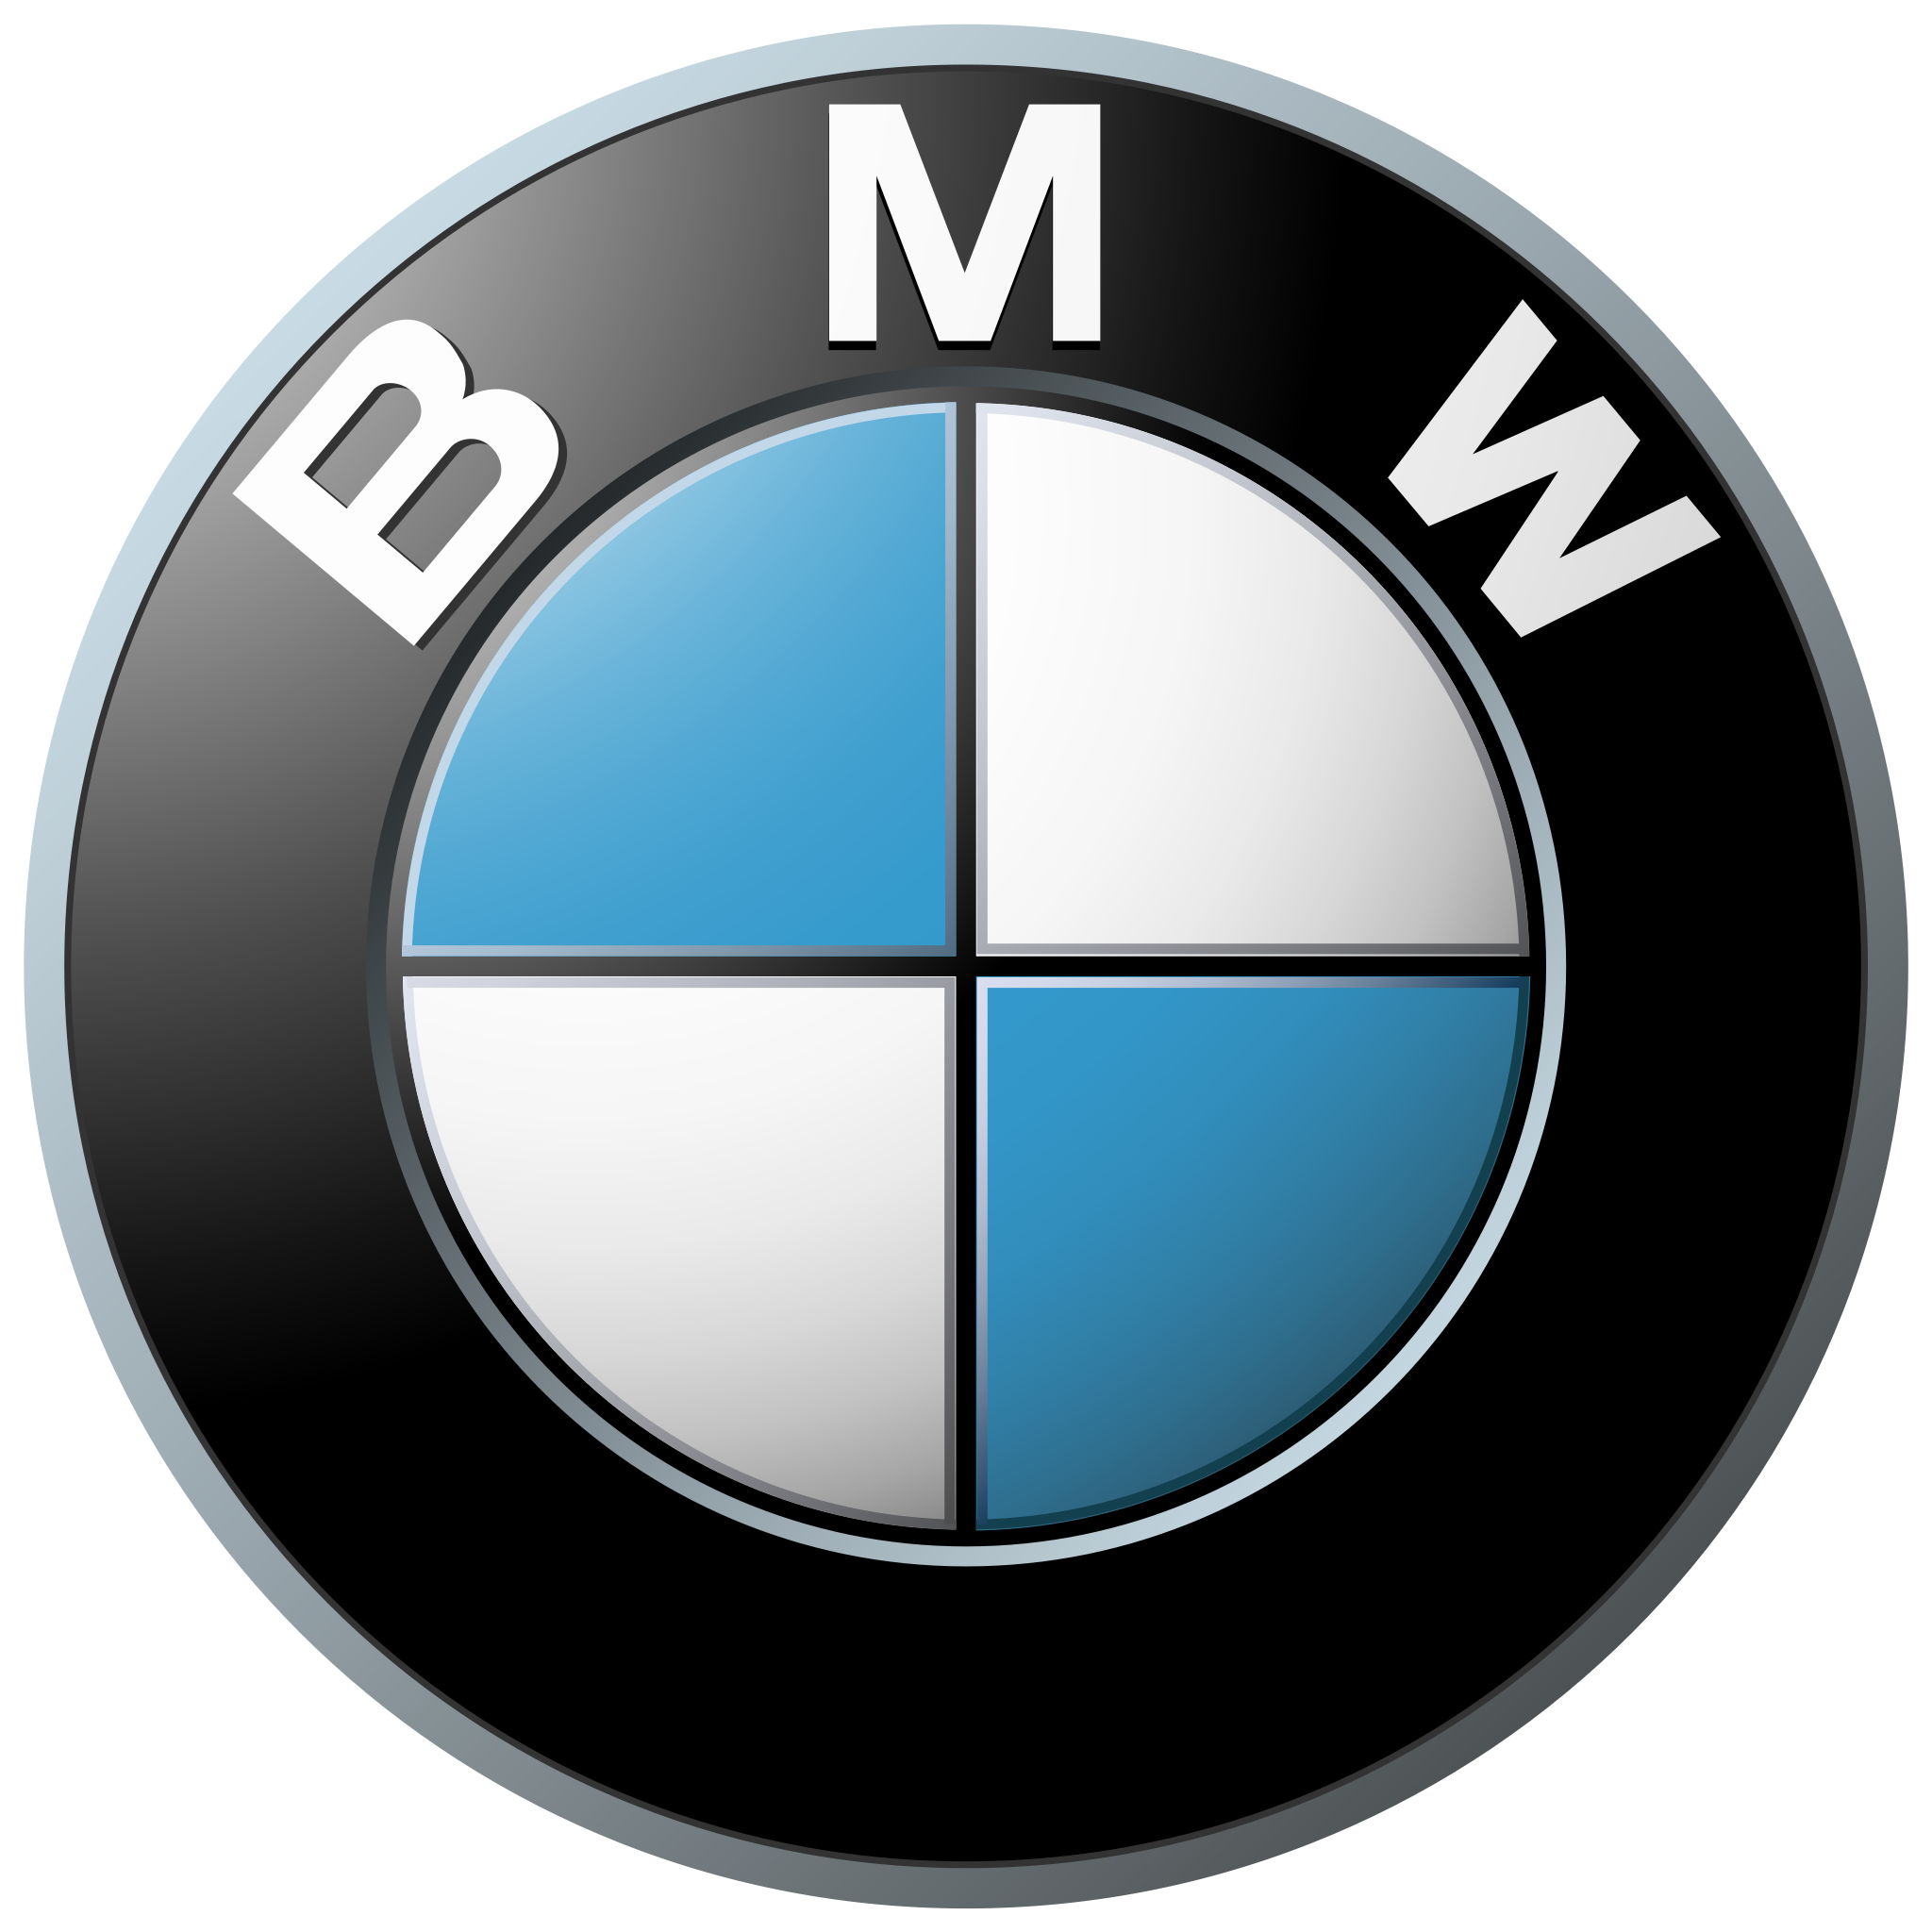 Bmw logo png. Hd meaning information carlogos